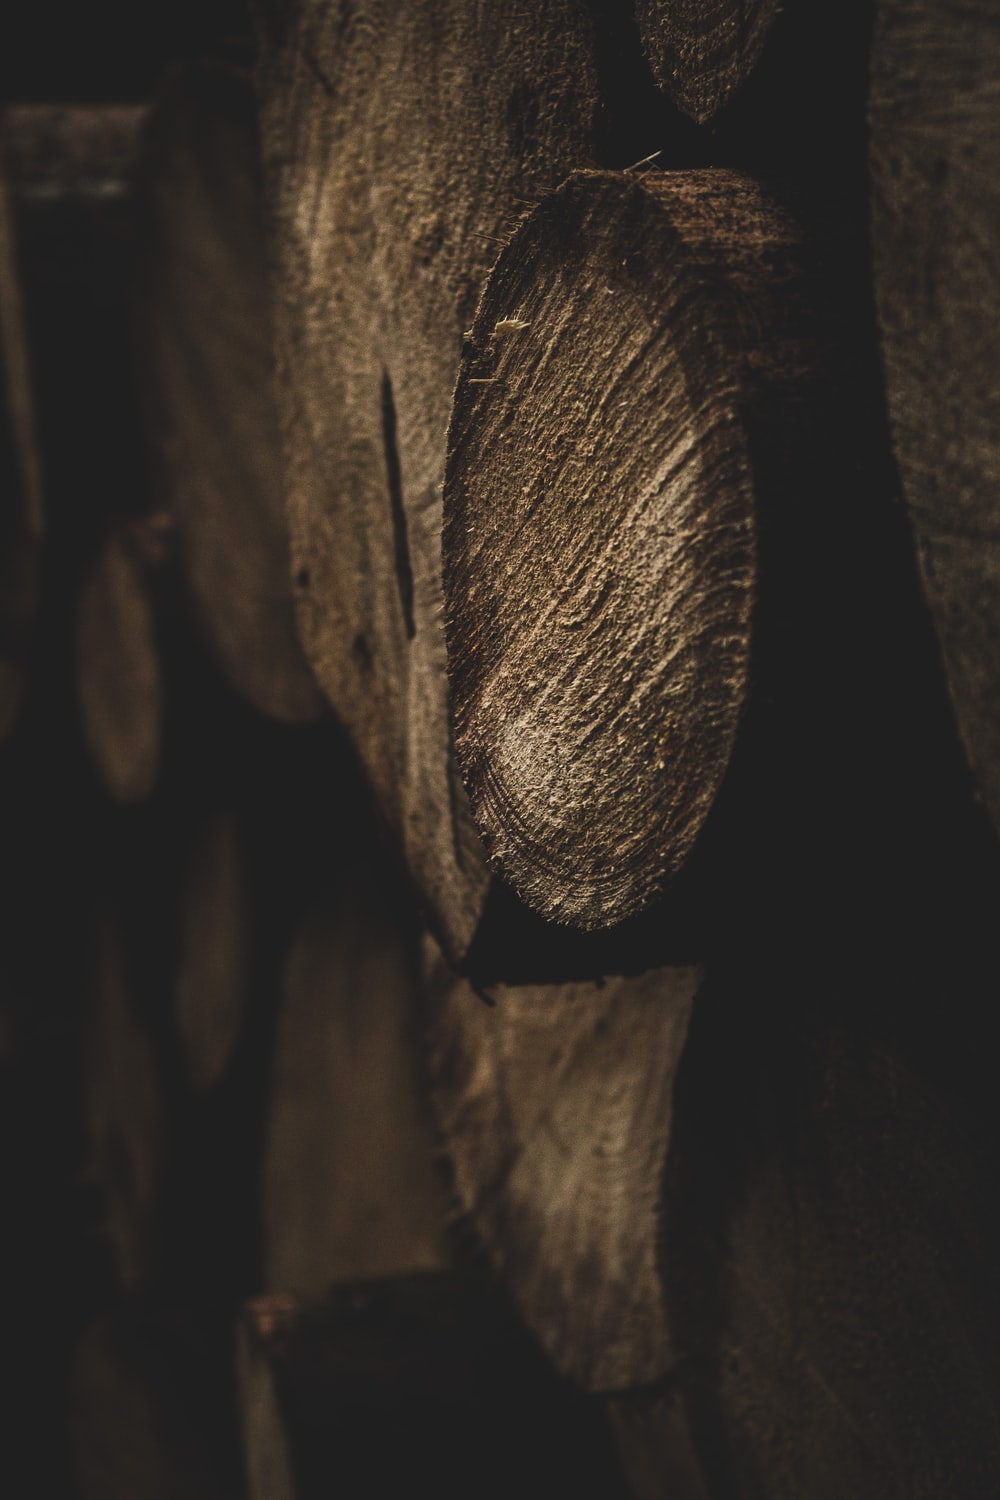 brown wooden tree trunk in grayscale photography